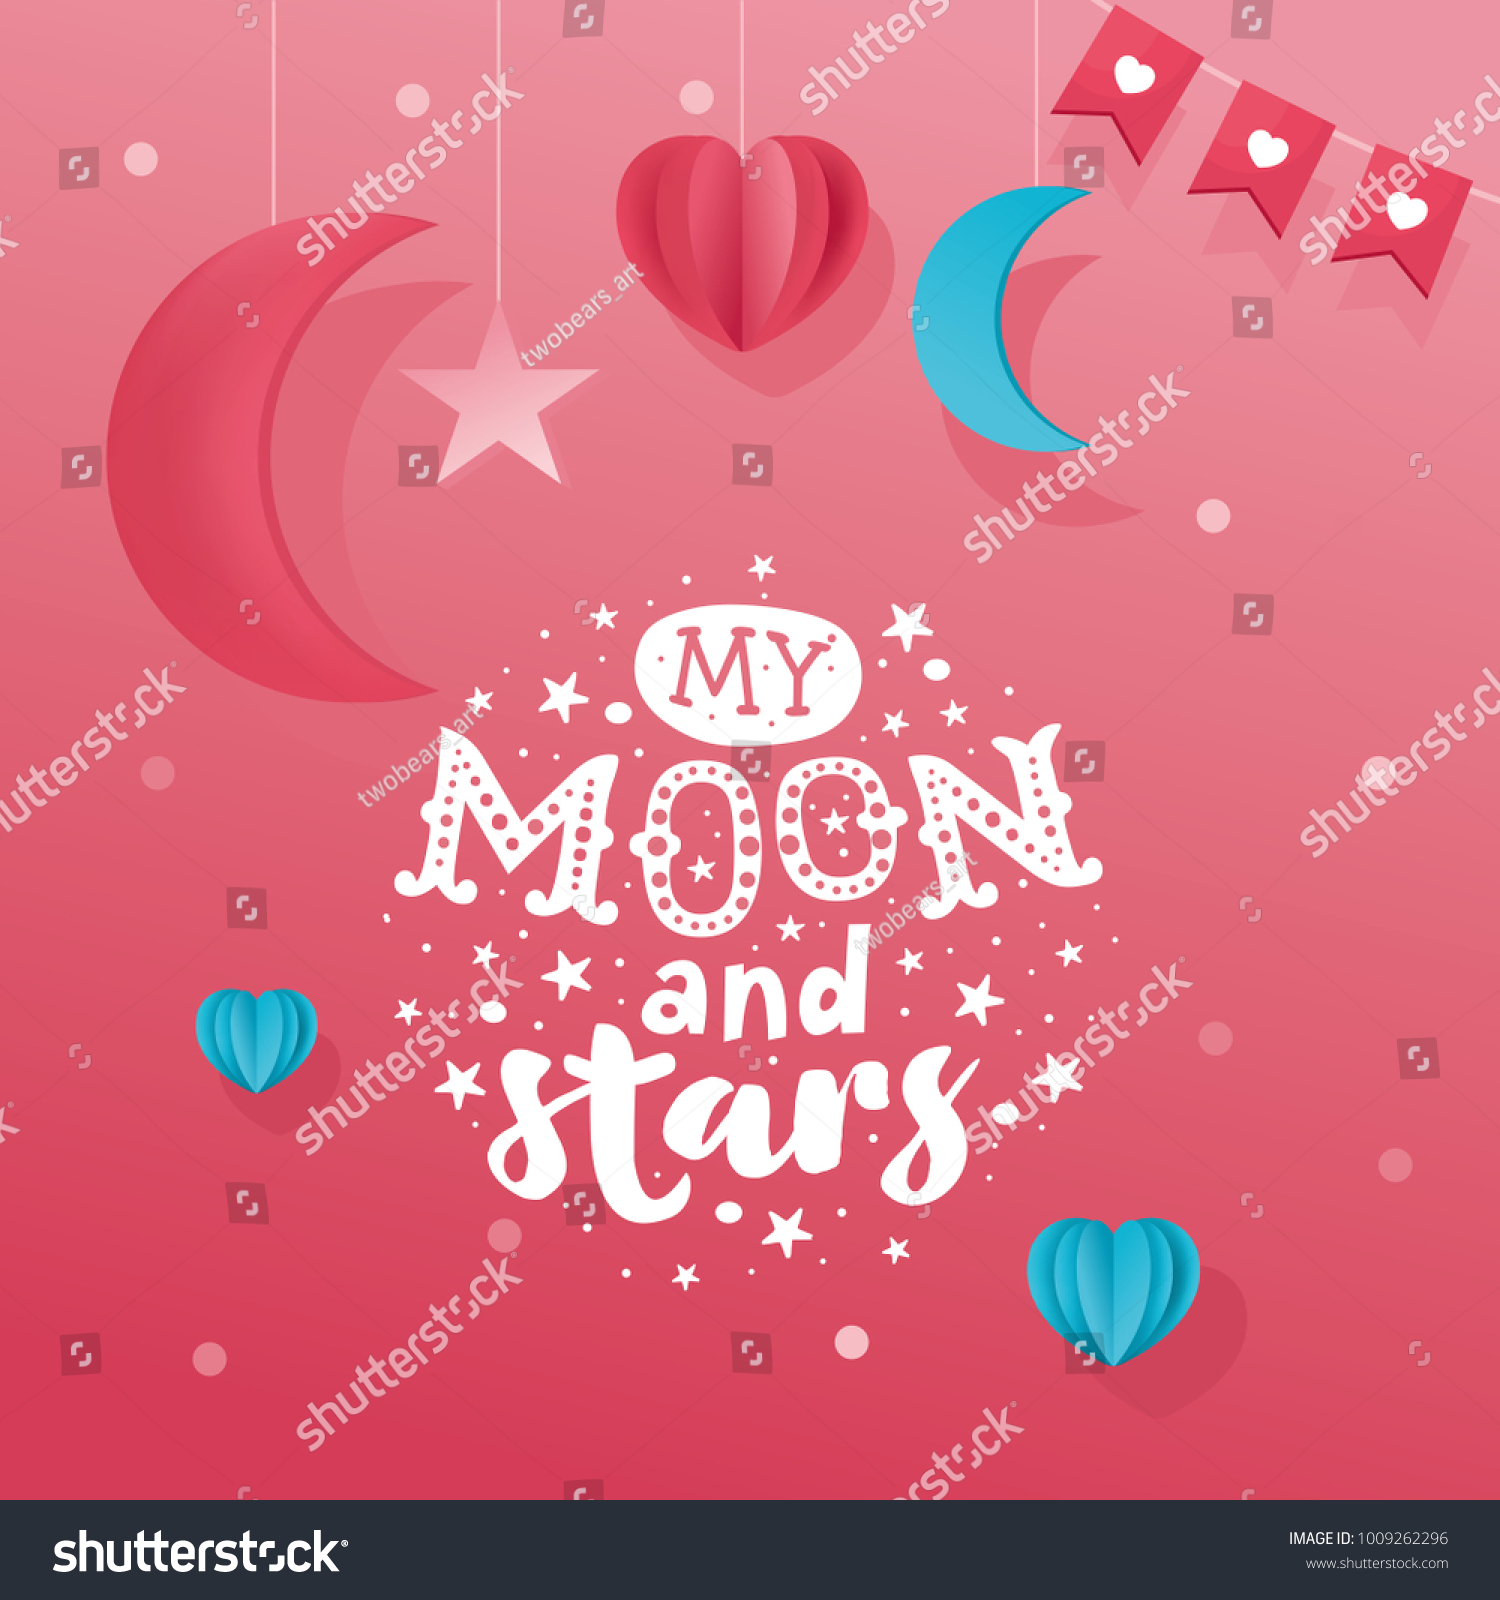 Romantic greeting card handlettering message moon stock vector romantic greeting card hand lettering message my moon and stars paper kristyandbryce Image collections